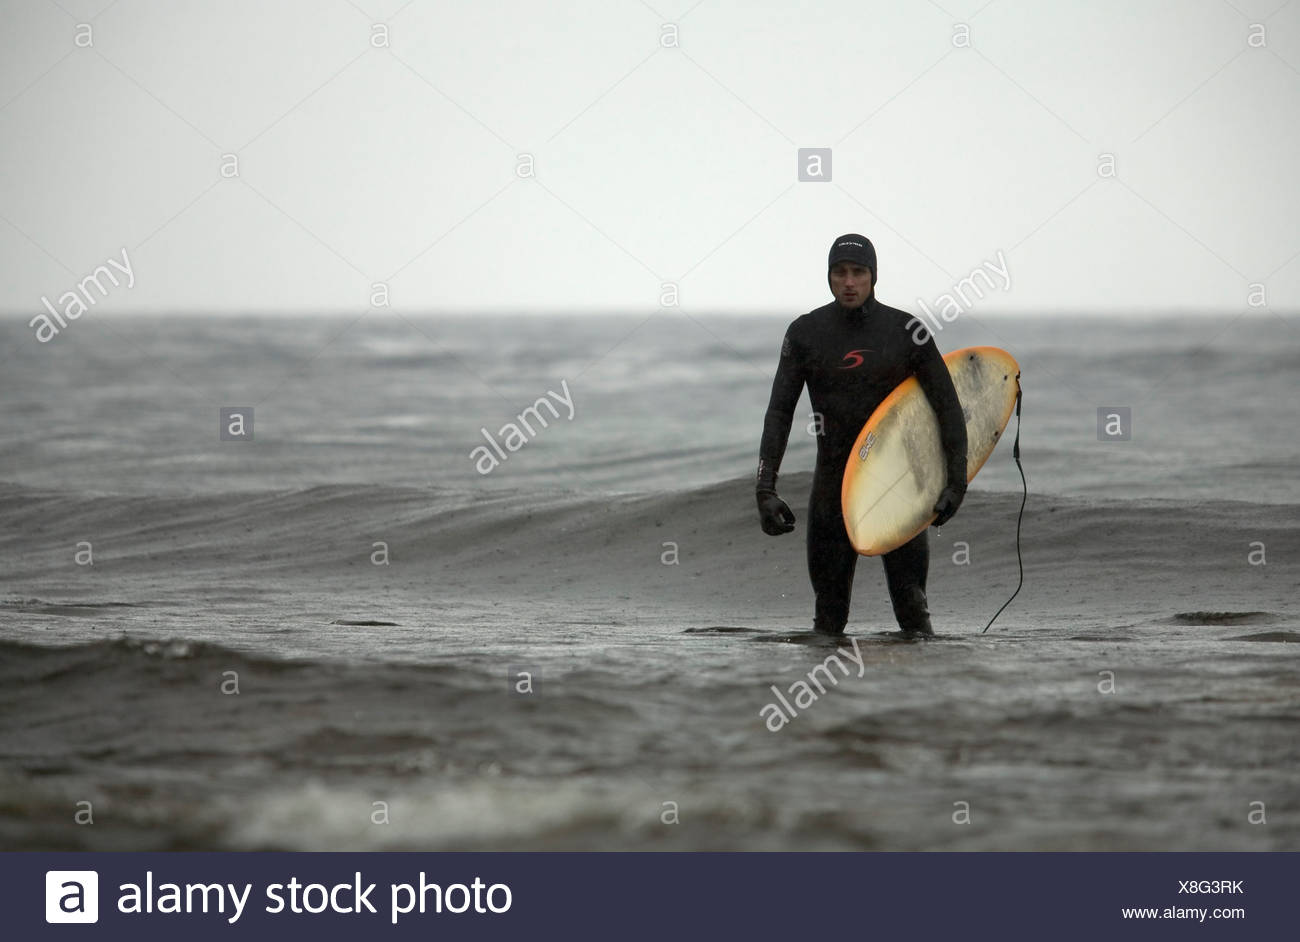 A man stands in knee deep water after facing the harsh canadian surf enviroment. - Stock Image